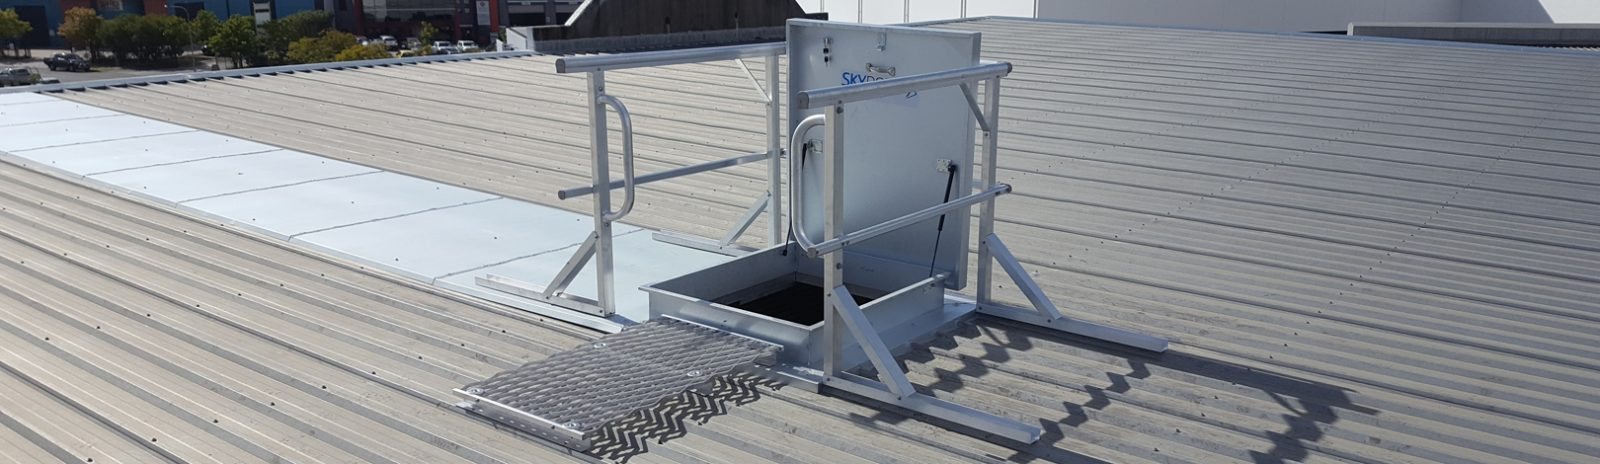 Roof Access Hatch and Hatches Safe At Heights Brisbane Queensland 3